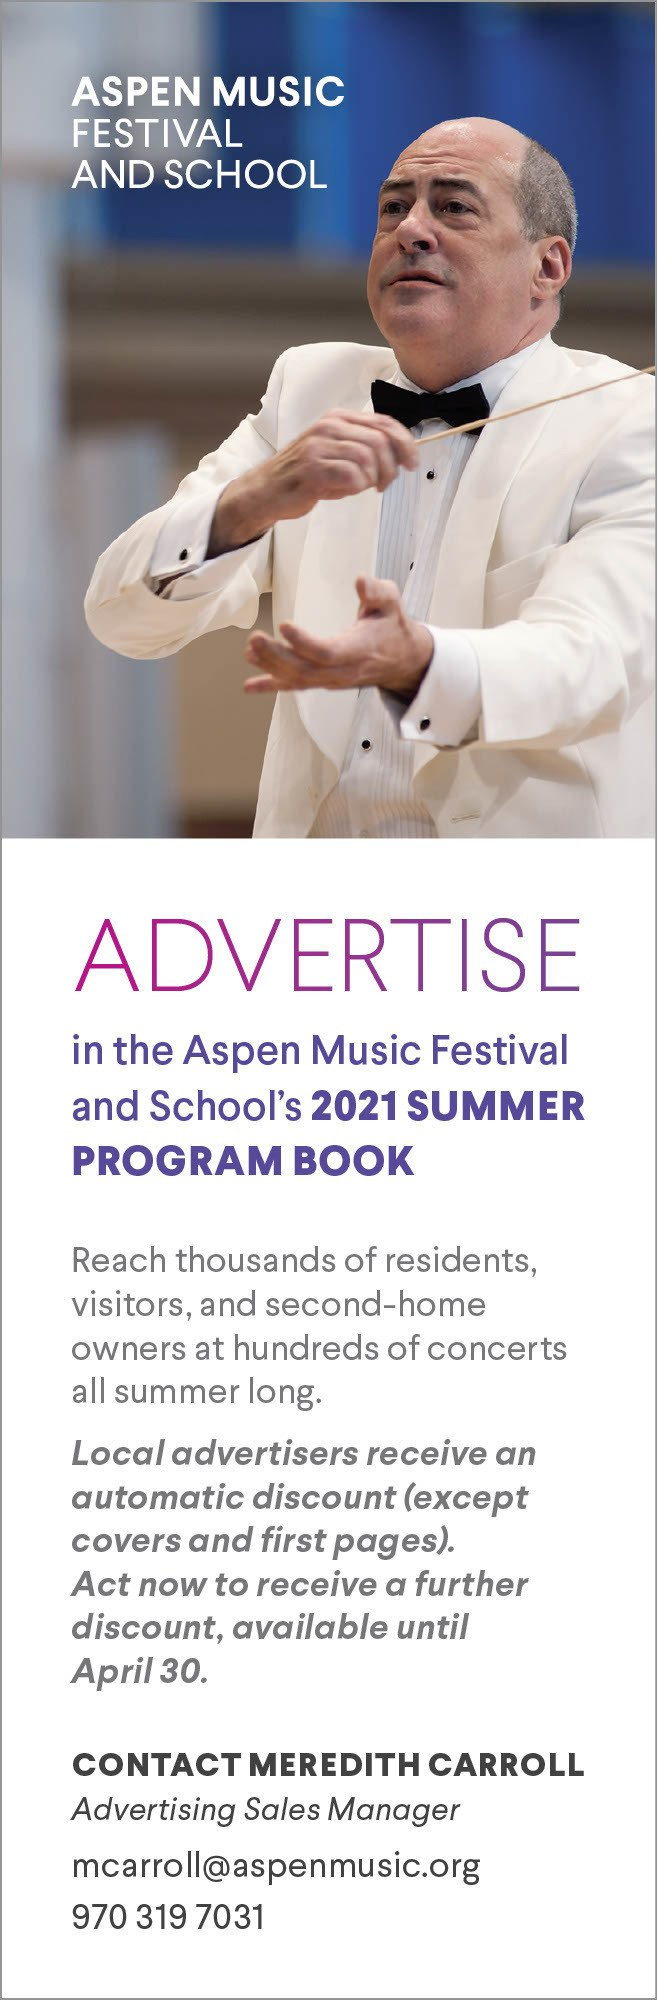 Aspen Music Festival advertise thumbnail